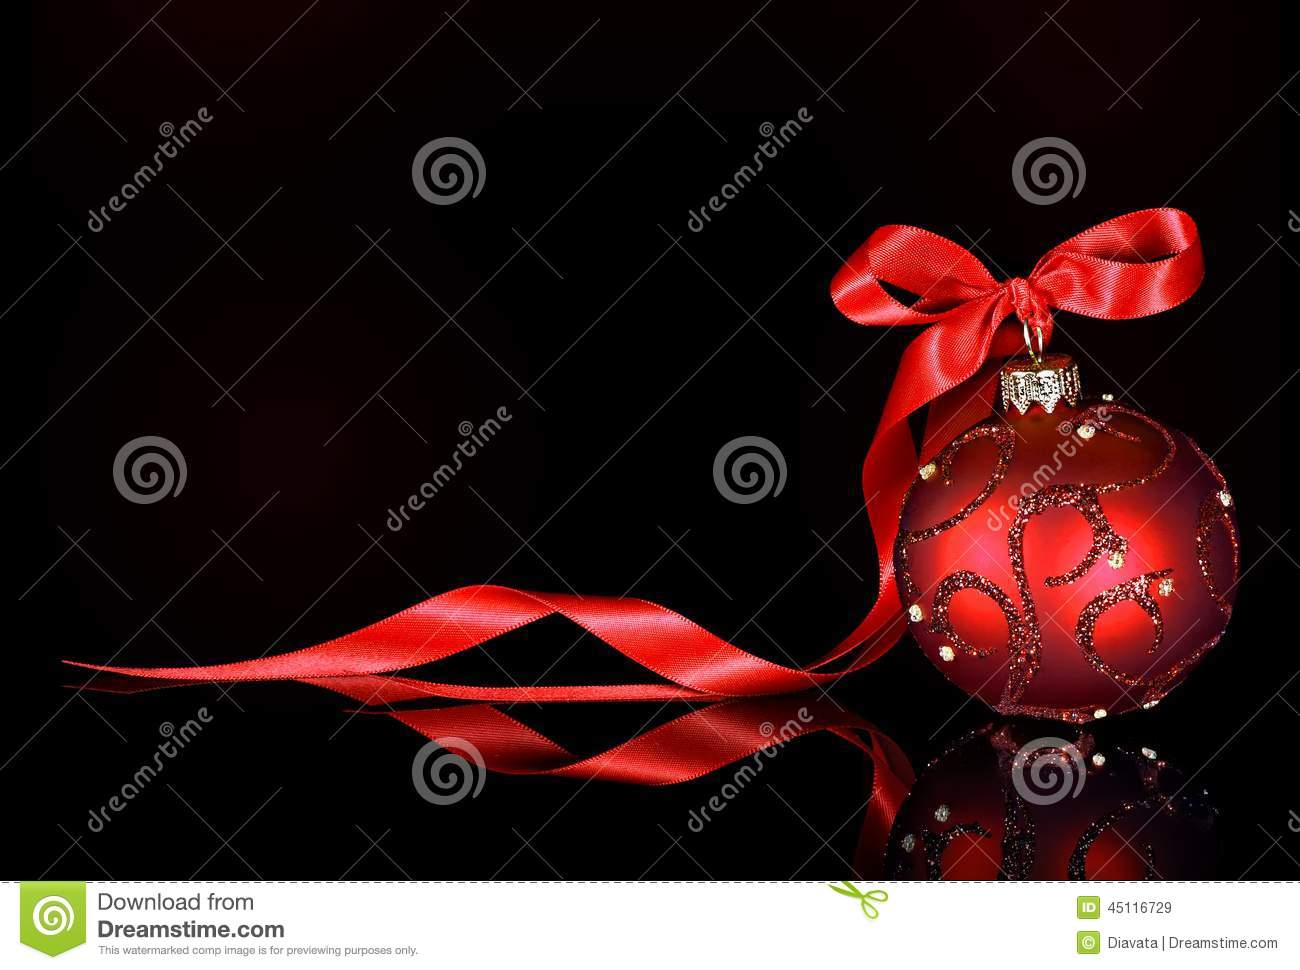 christmas background with red ornament and ribbon on a black background - Black Red Silver Christmas Decorations